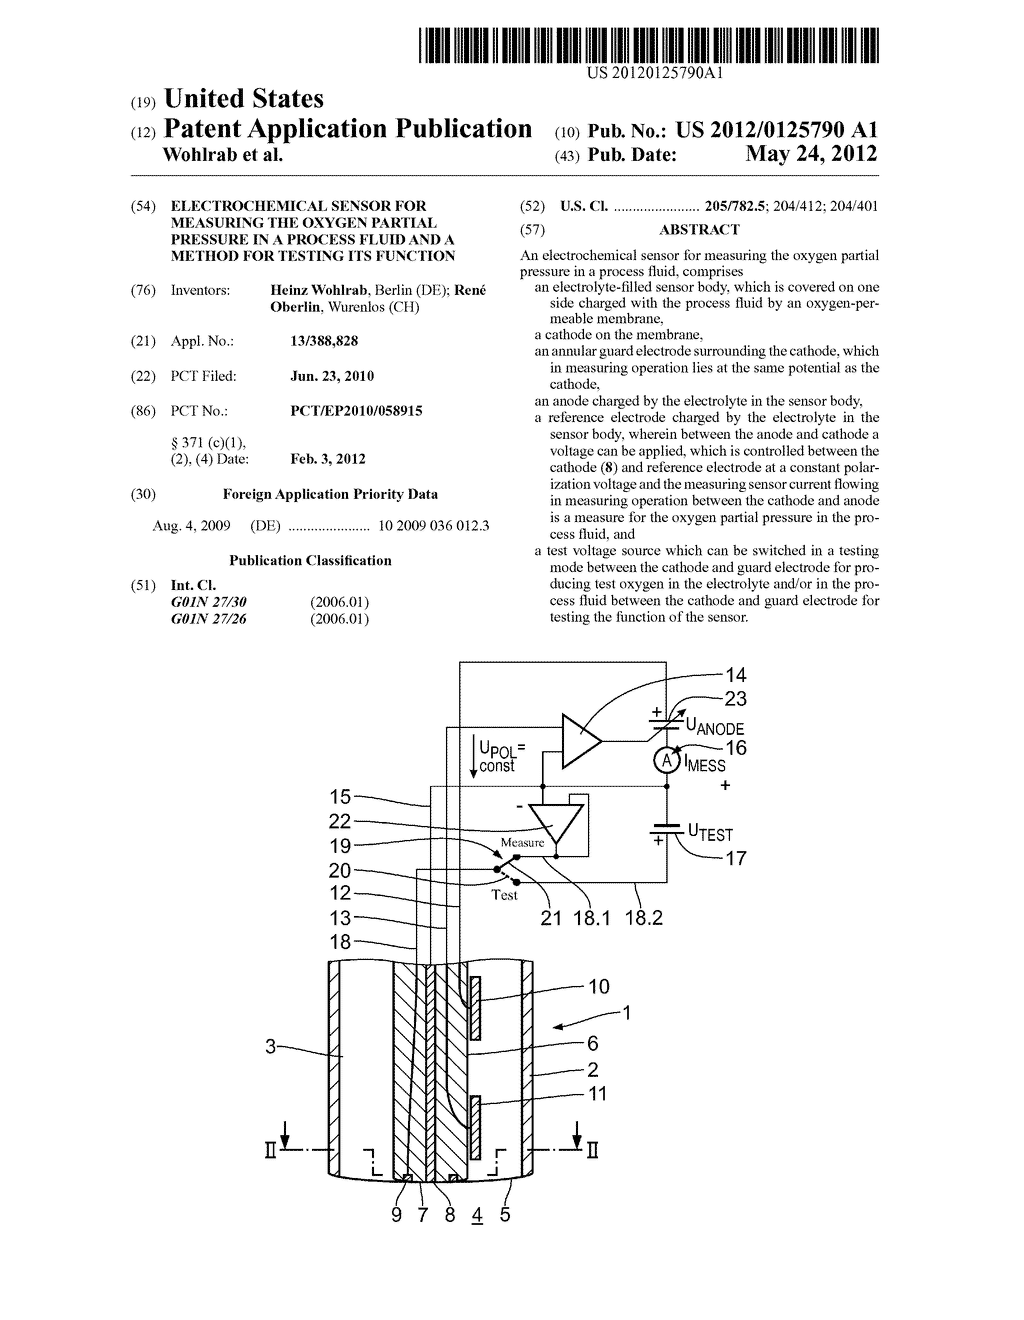 ELECTROCHEMICAL SENSOR FOR MEASURING THE OXYGEN PARTIAL PRESSURE IN A     PROCESS FLUID AND A METHOD FOR TESTING ITS FUNCTION - diagram, schematic, and image 01